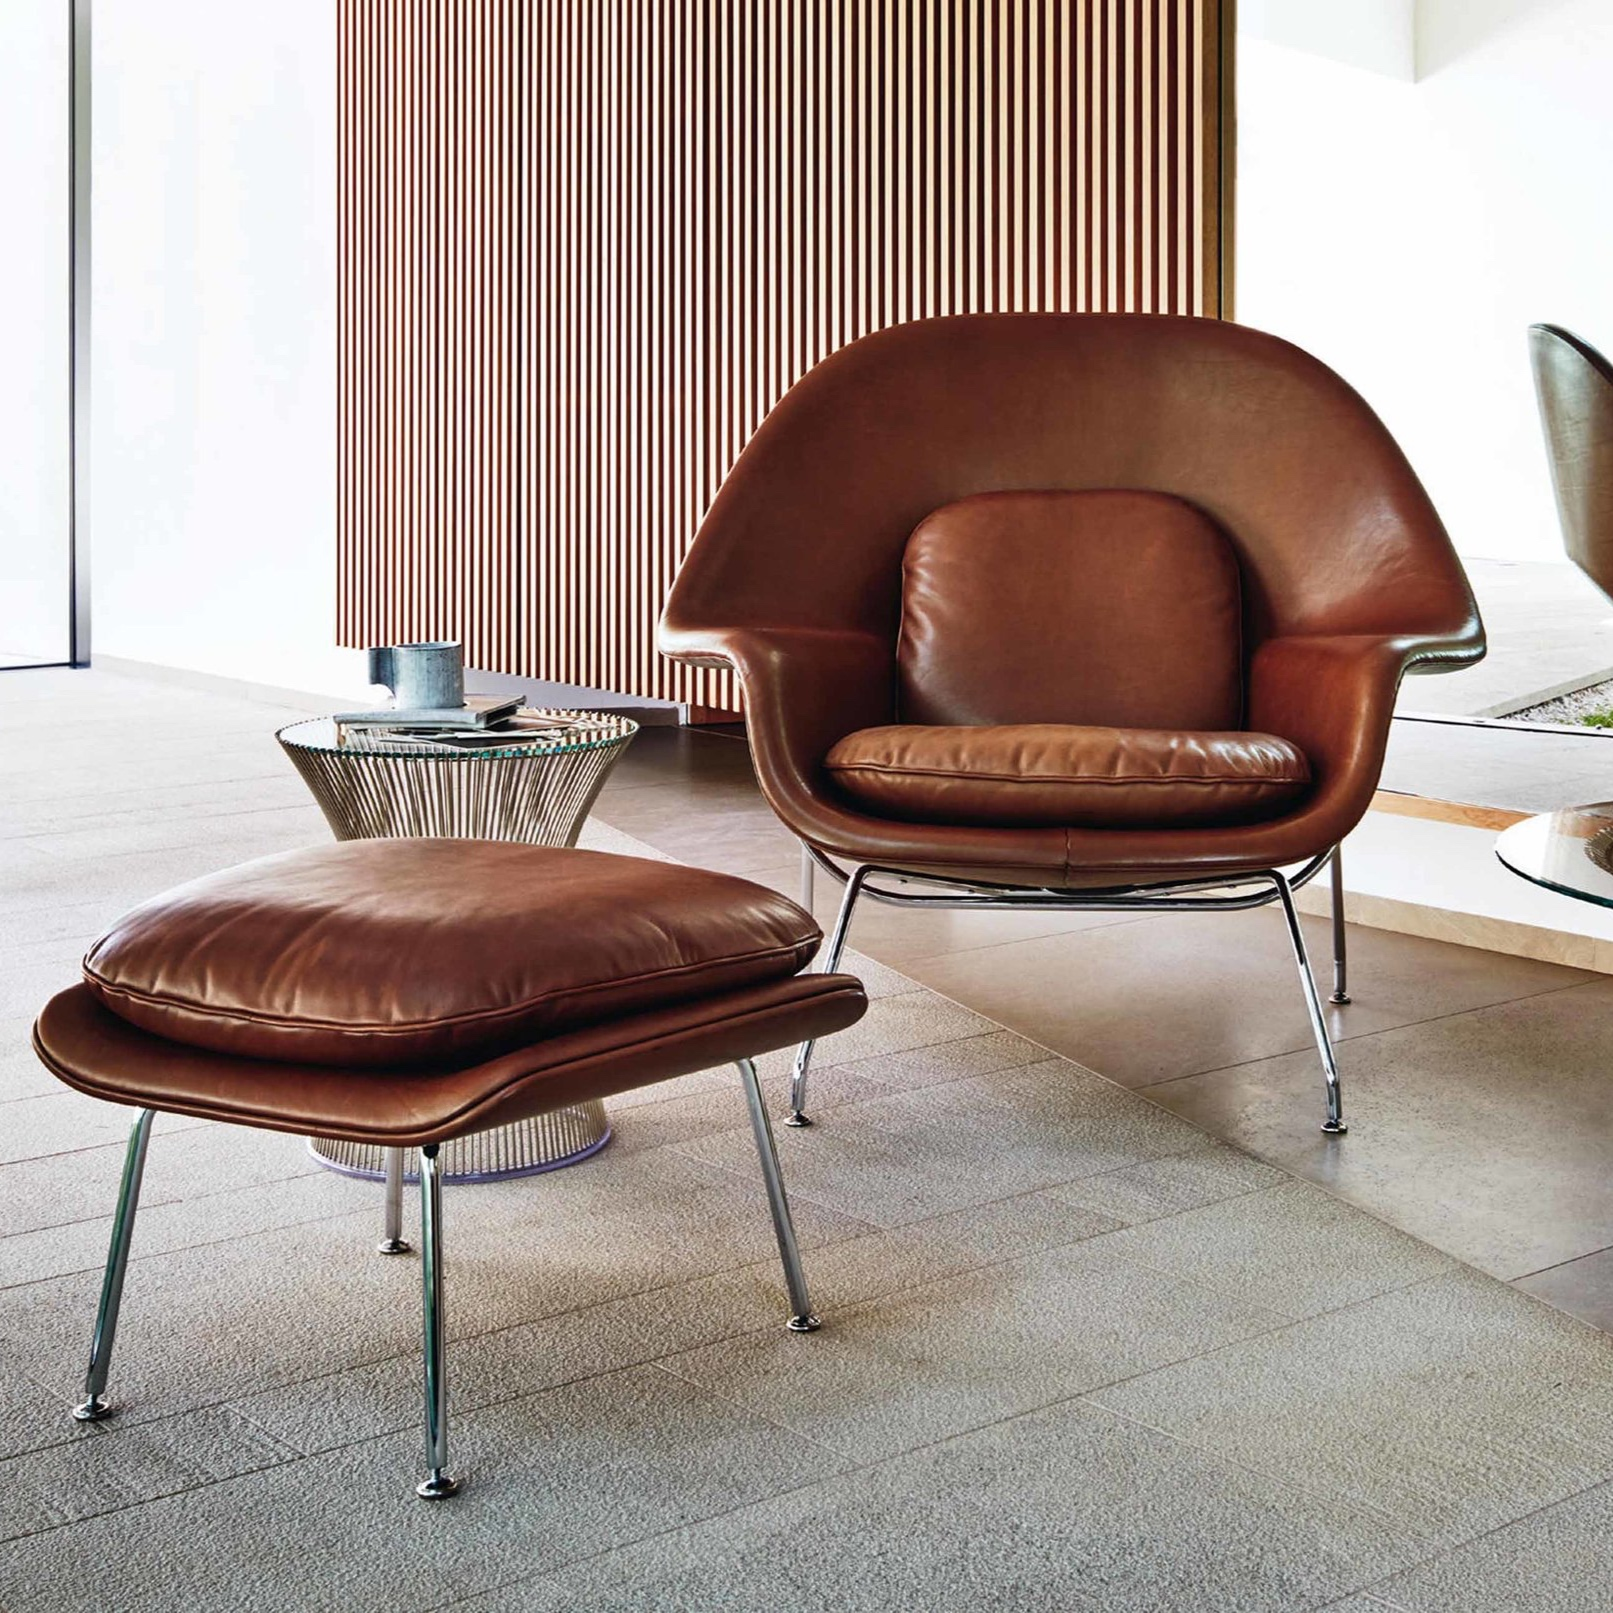 knoll-dealer-womb-chair-leather.jpg